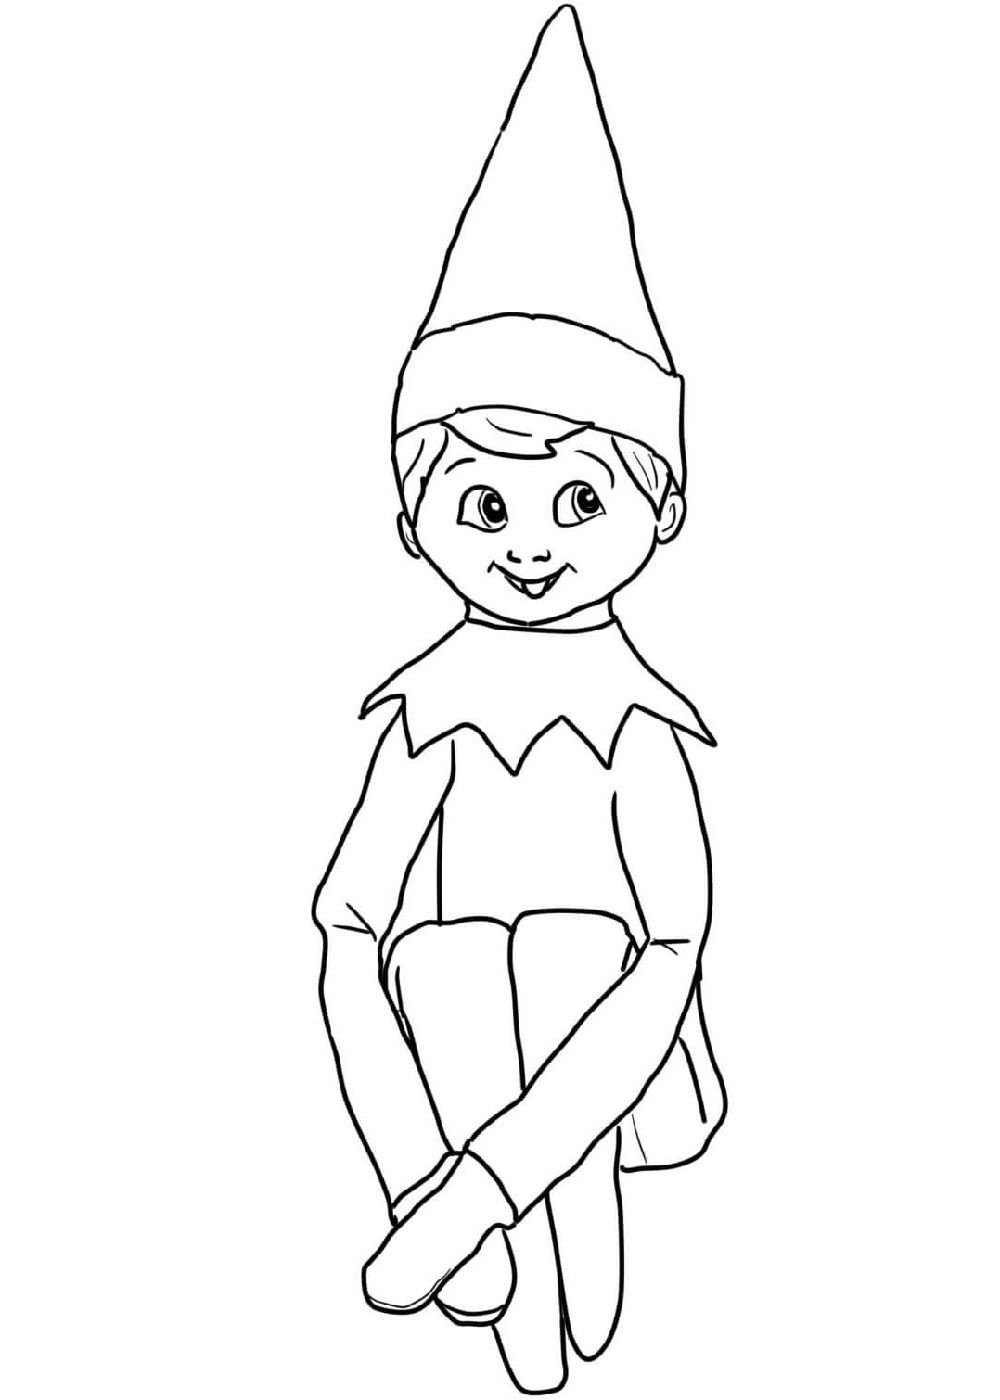 elf pictures to colour and print doraemon on the shelf coloring zombie for shopkin coloring pages Elf On The Shelf Coloring Page